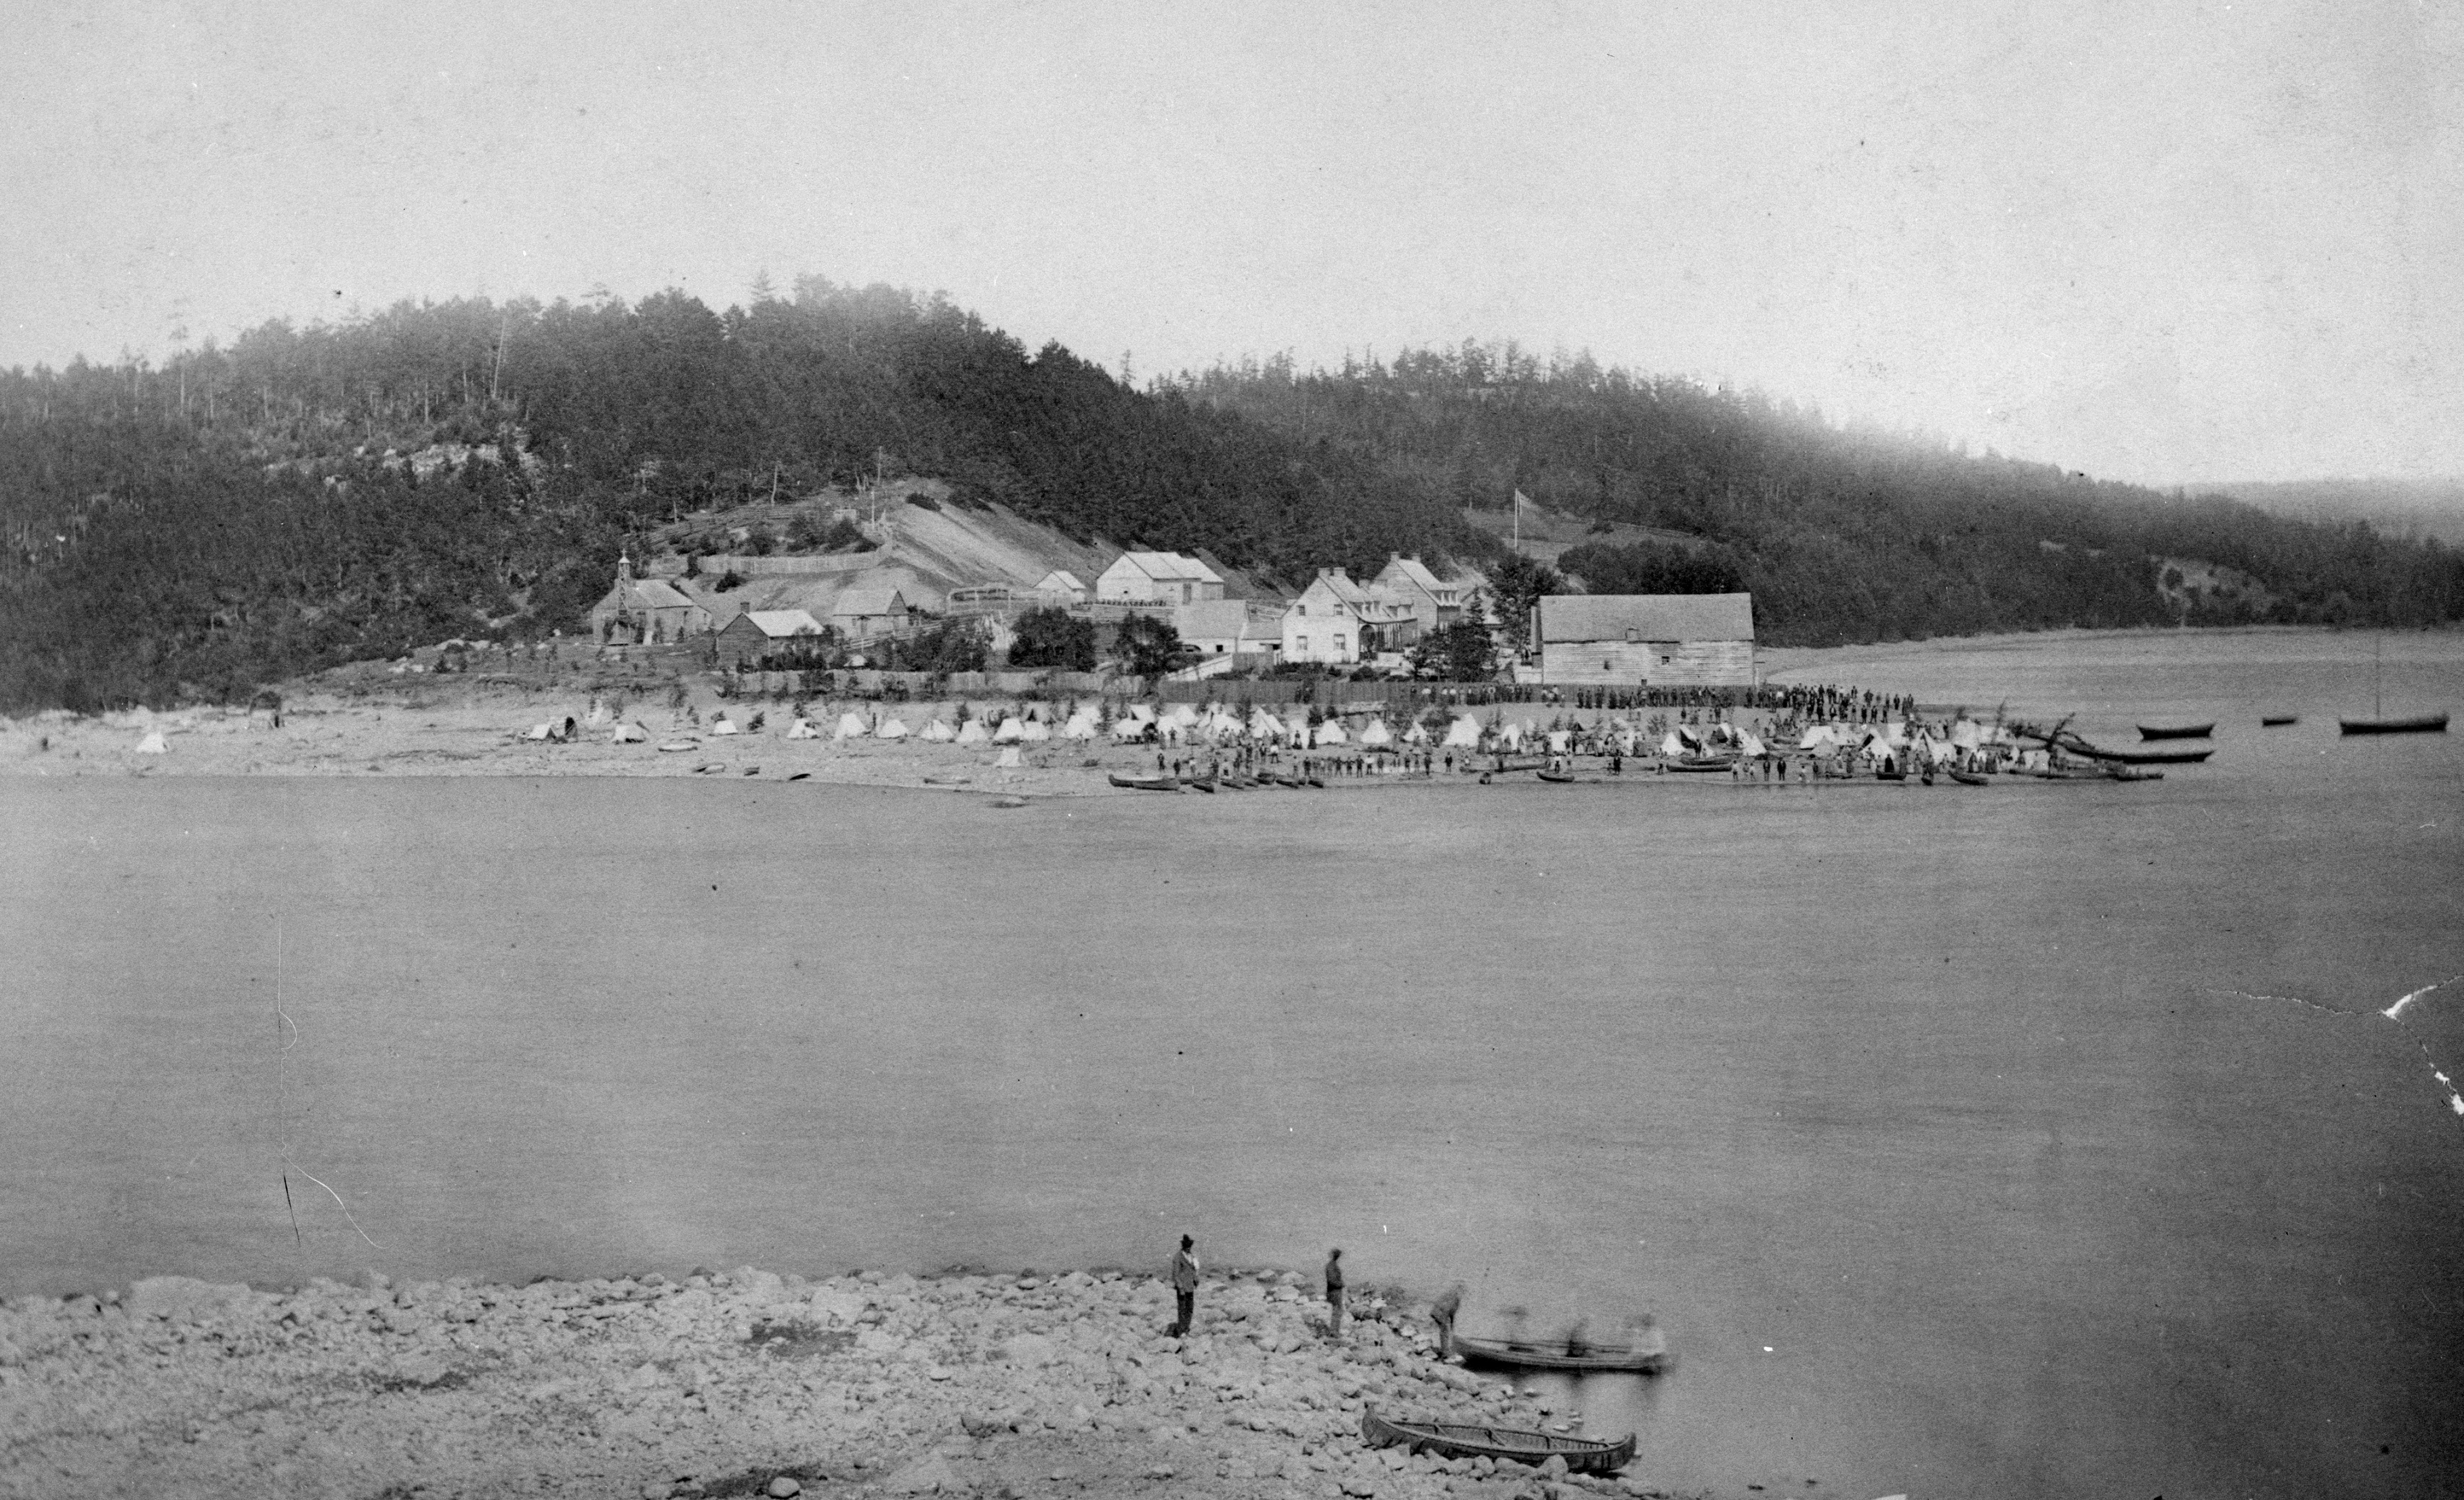 Fort Temiscamingue/Timiskaming, a fur trading post about 80 kilometres north of Témiscaming, Que., in 1876. (Patent and Copyright Office/Library and Archives Canada/PA-028724)